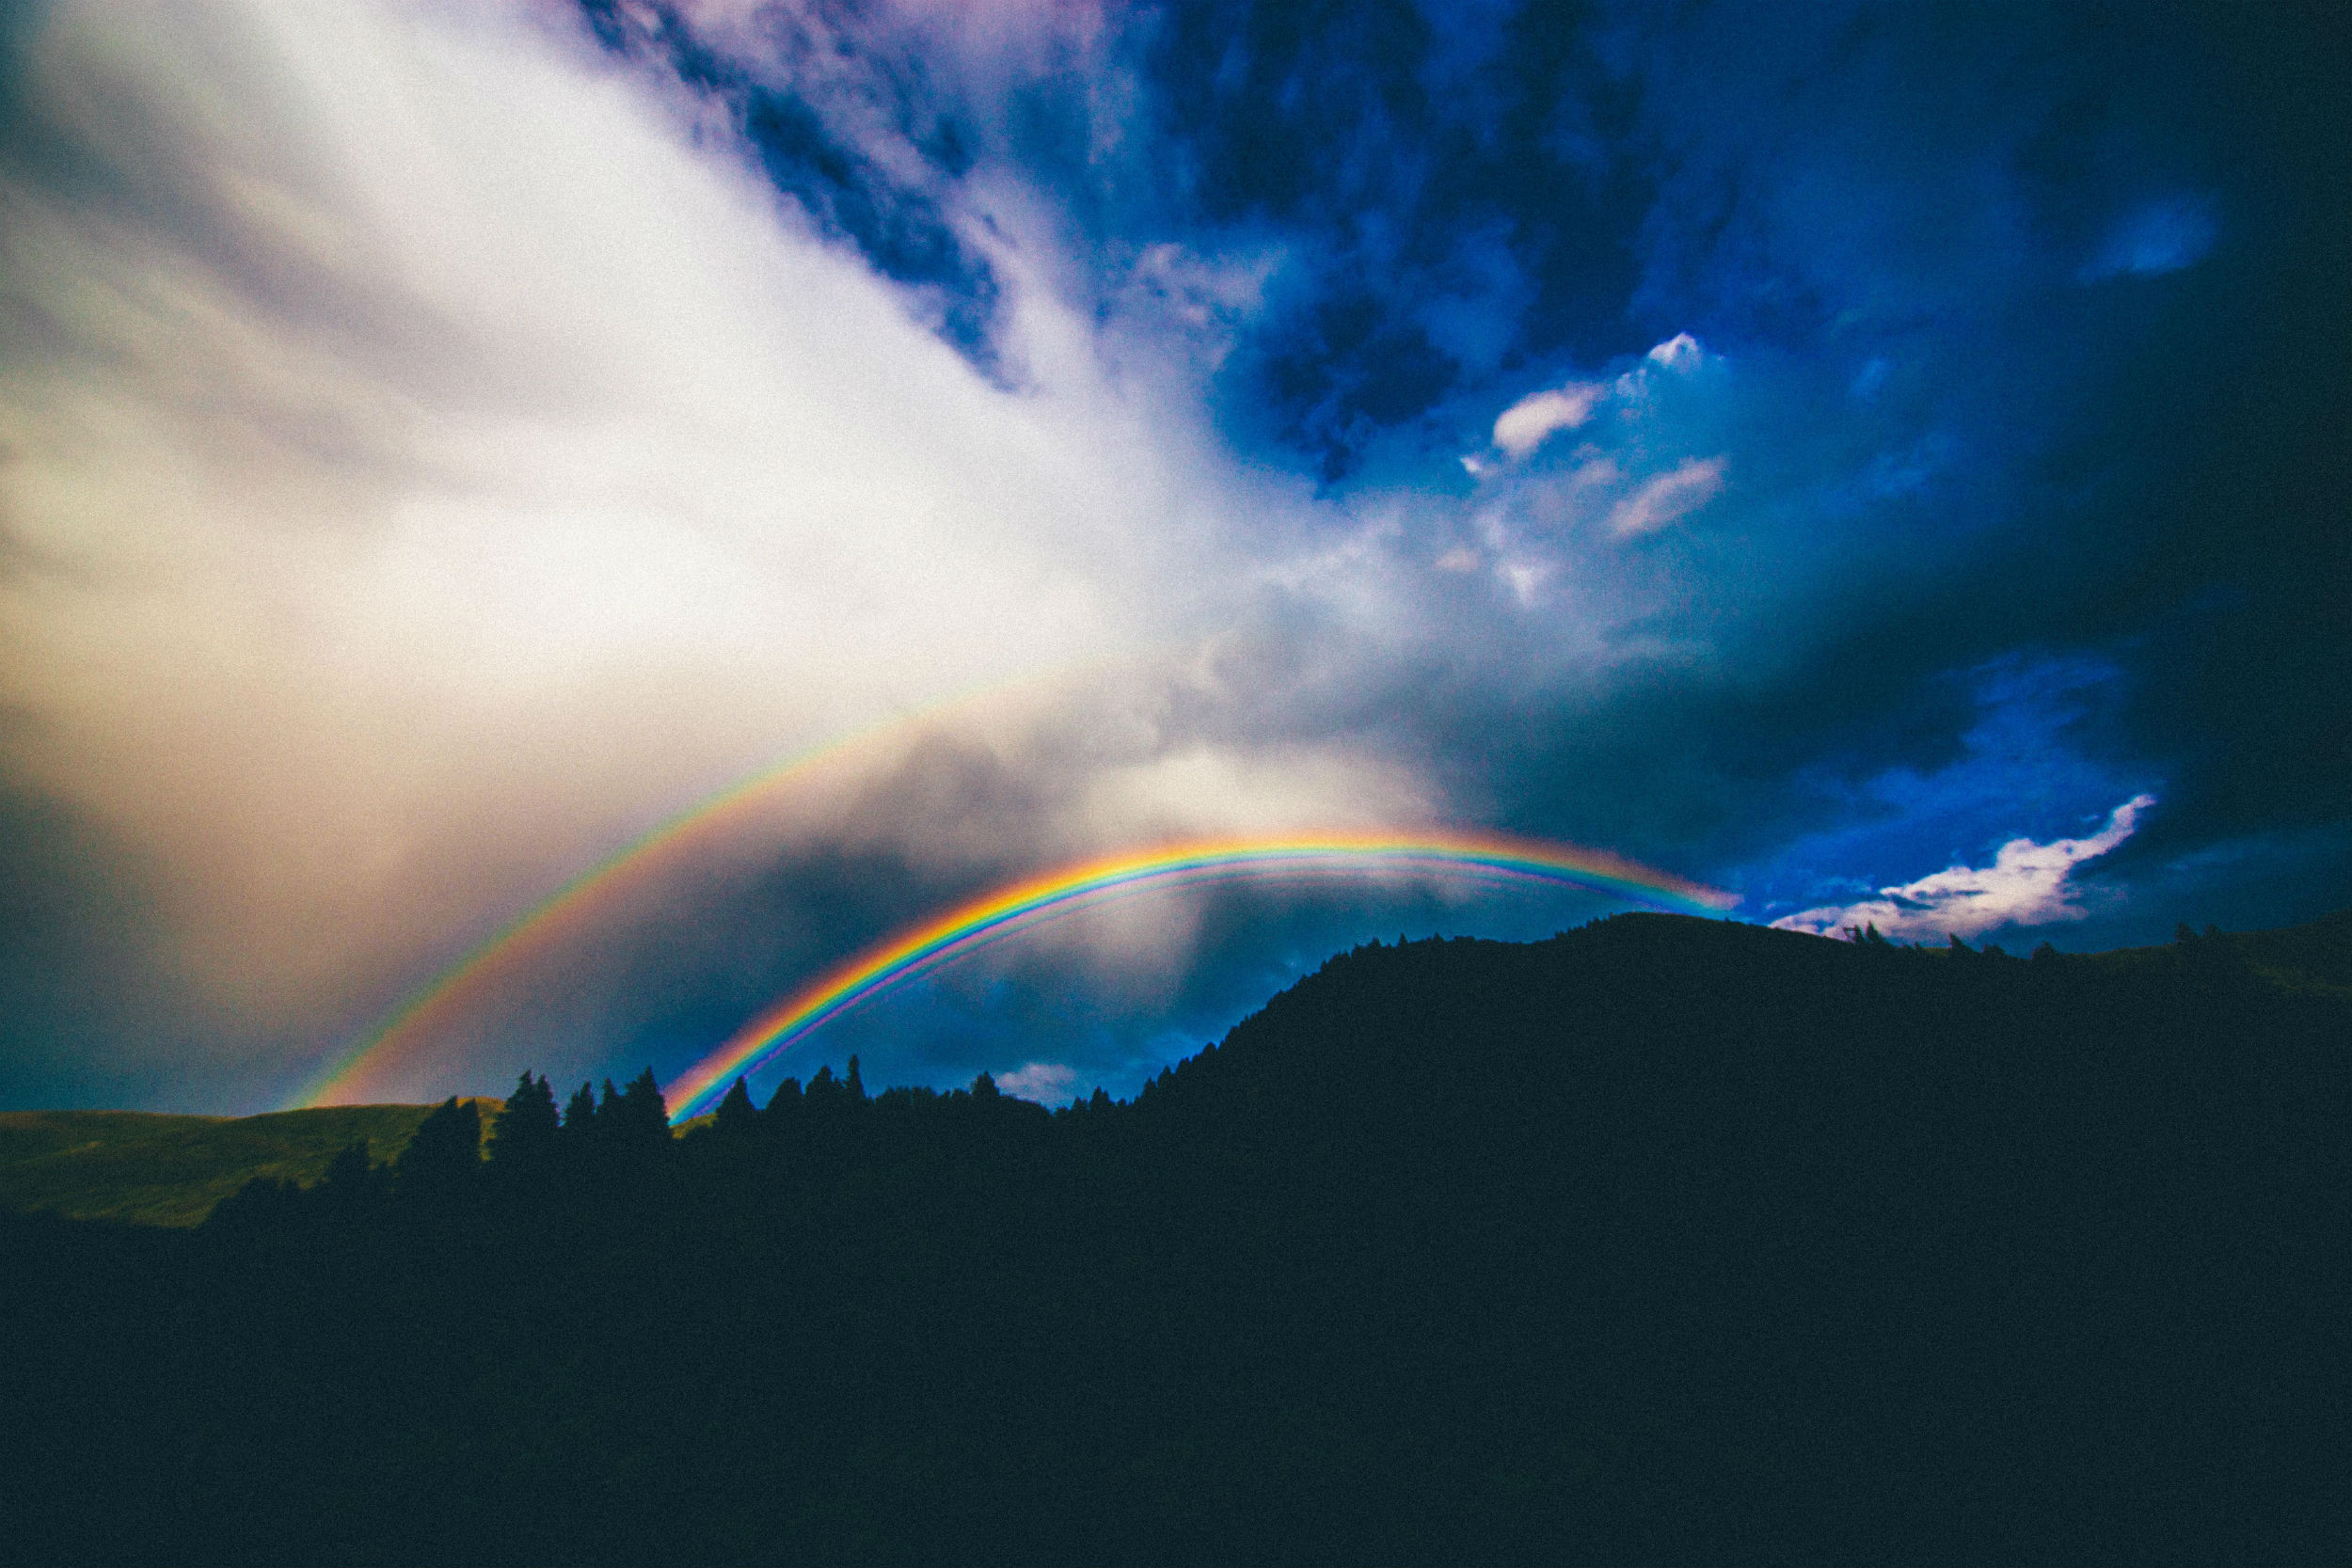 Double rainbow over mountains